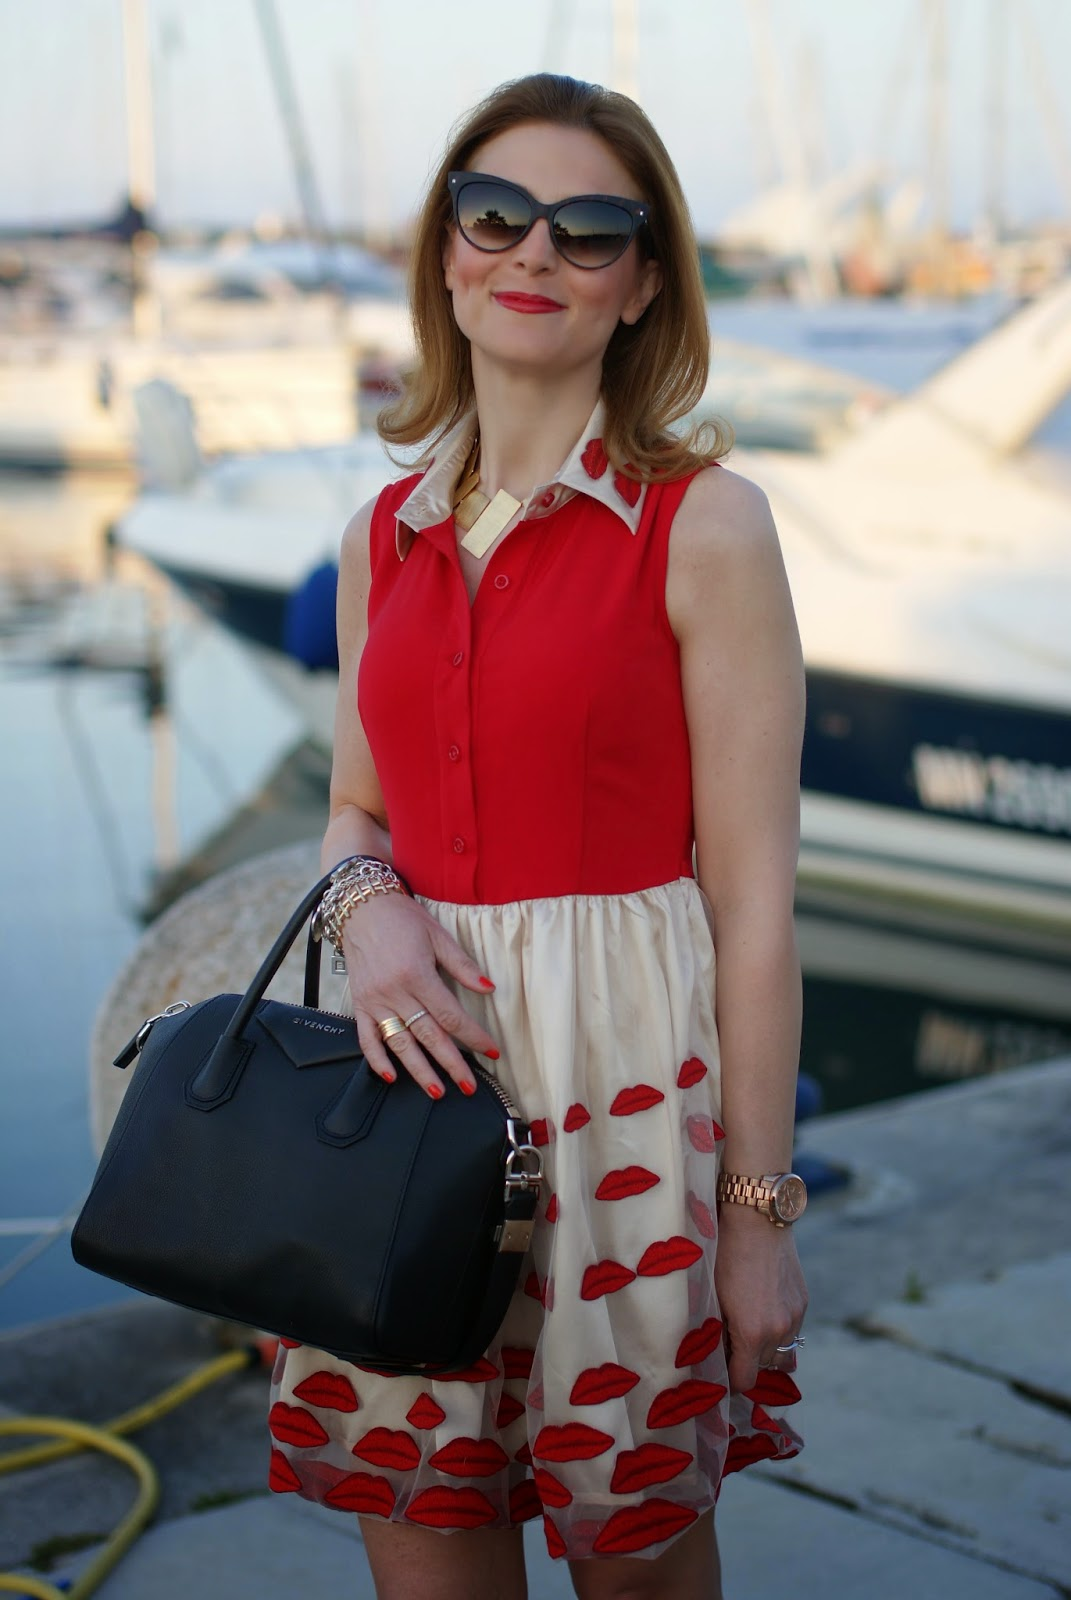 Vitti Ferria Contin necklace, NAU! sunglasses, red lips dress, Givenchy Antigona bag, Fashion and Cookies, fashion blogger